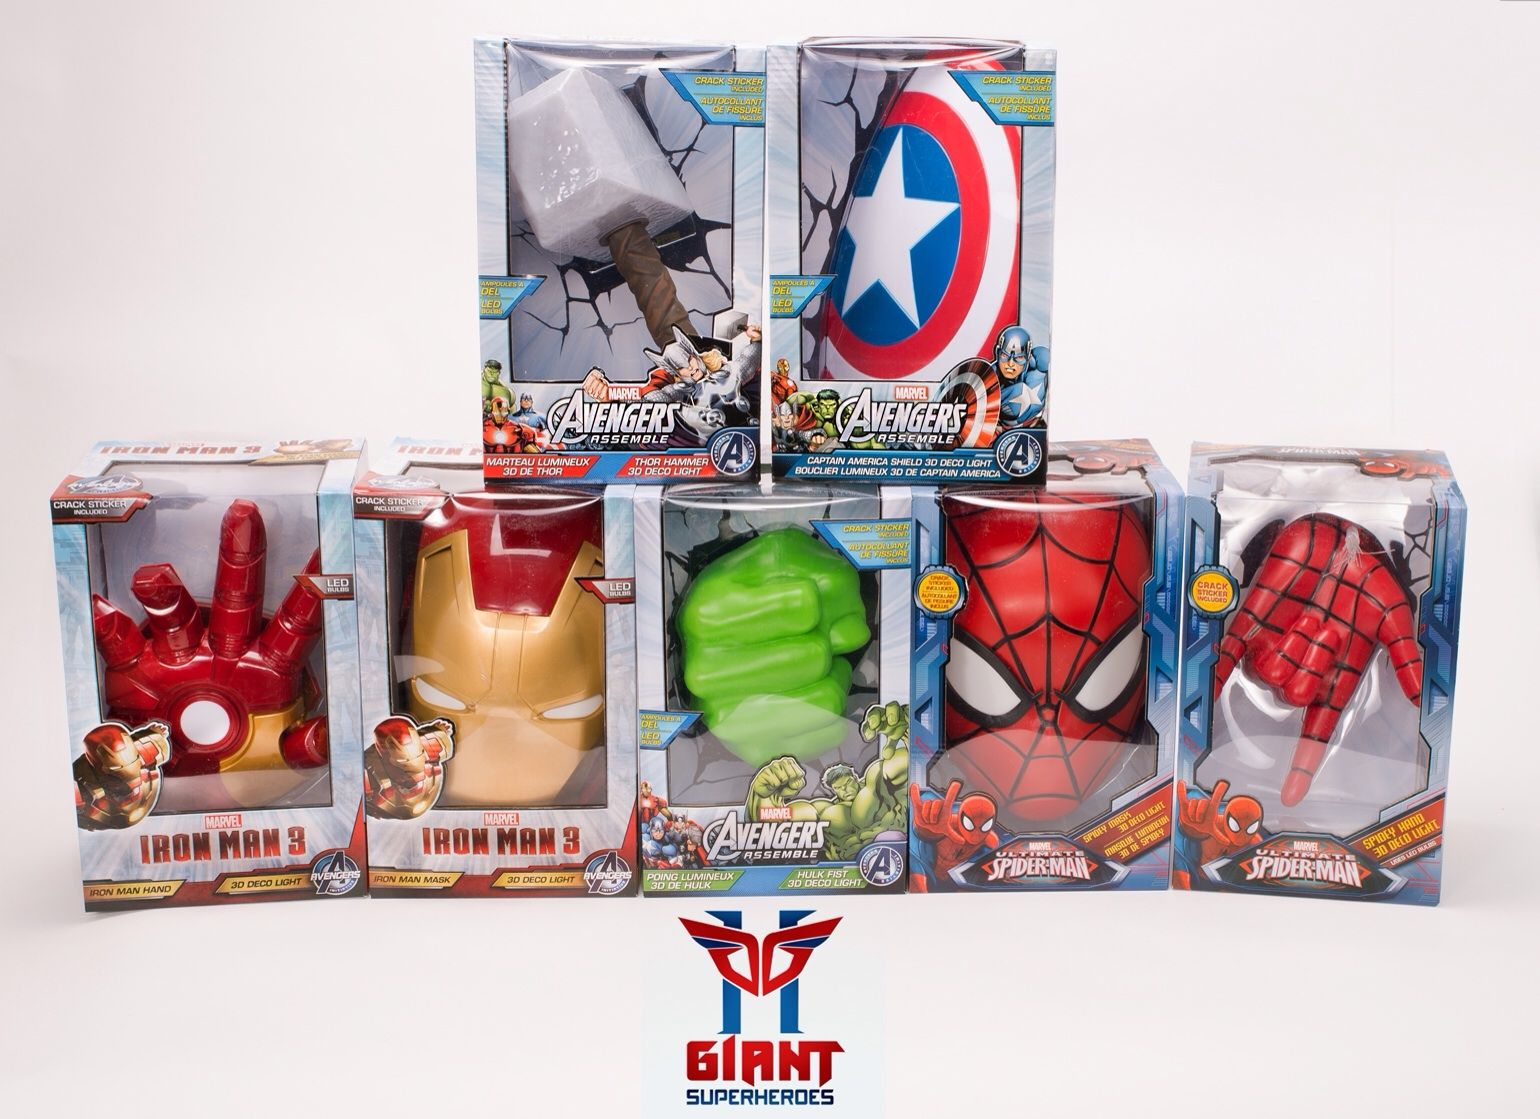 Super cool avengers 3d wall deco night lights for sale 3d wall super cool avengers 3d wall deco night lights for sale mozeypictures Image collections